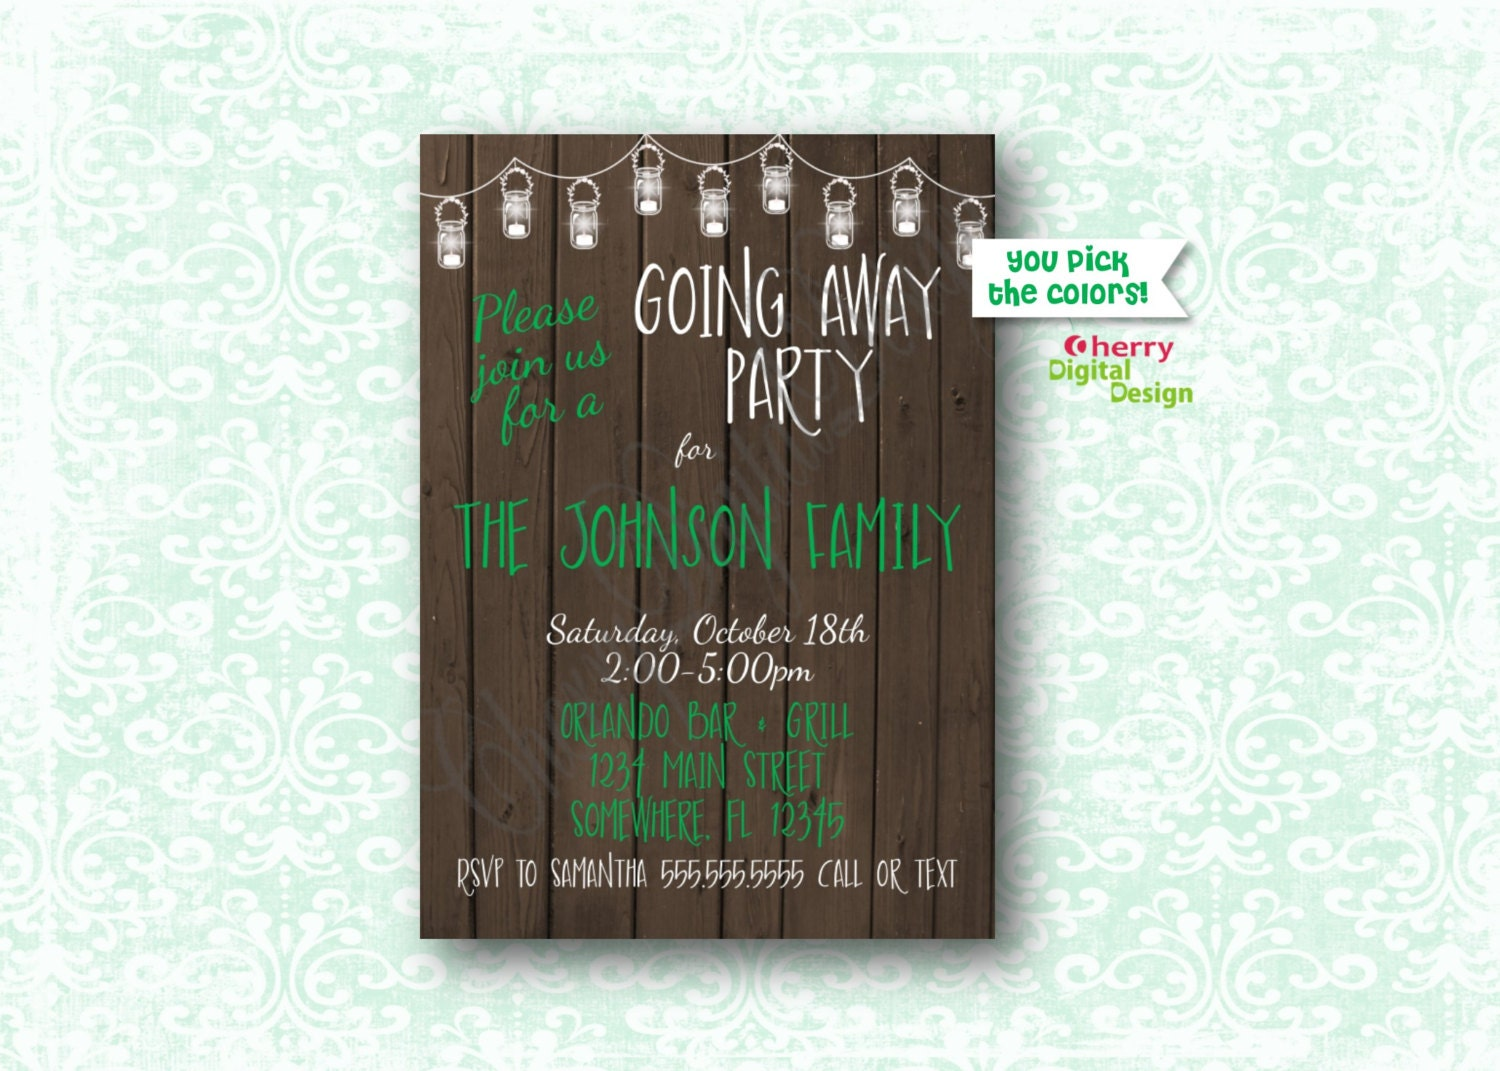 Going away party – Invitations for Going Away Party